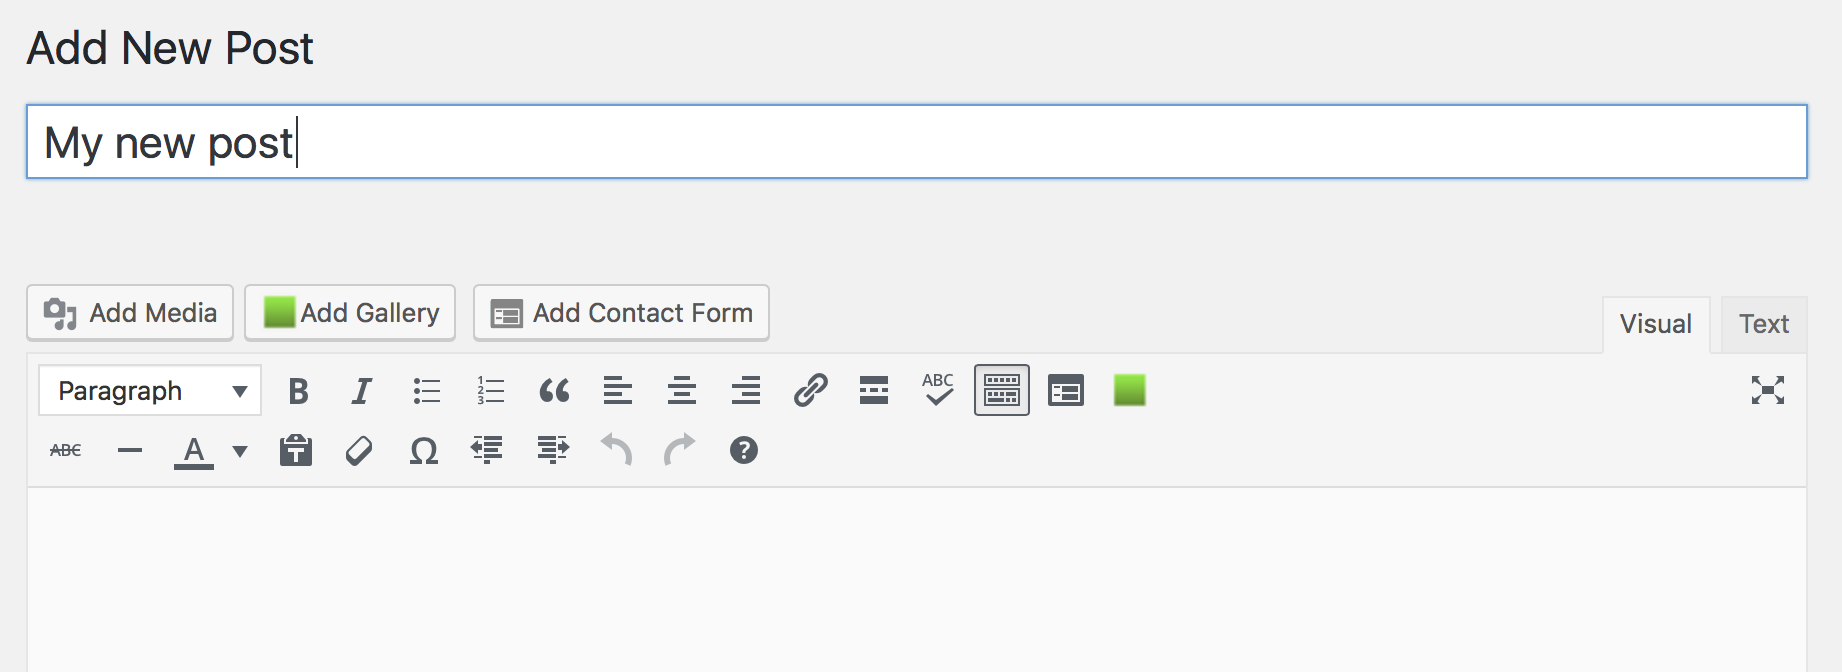 The add contact form button